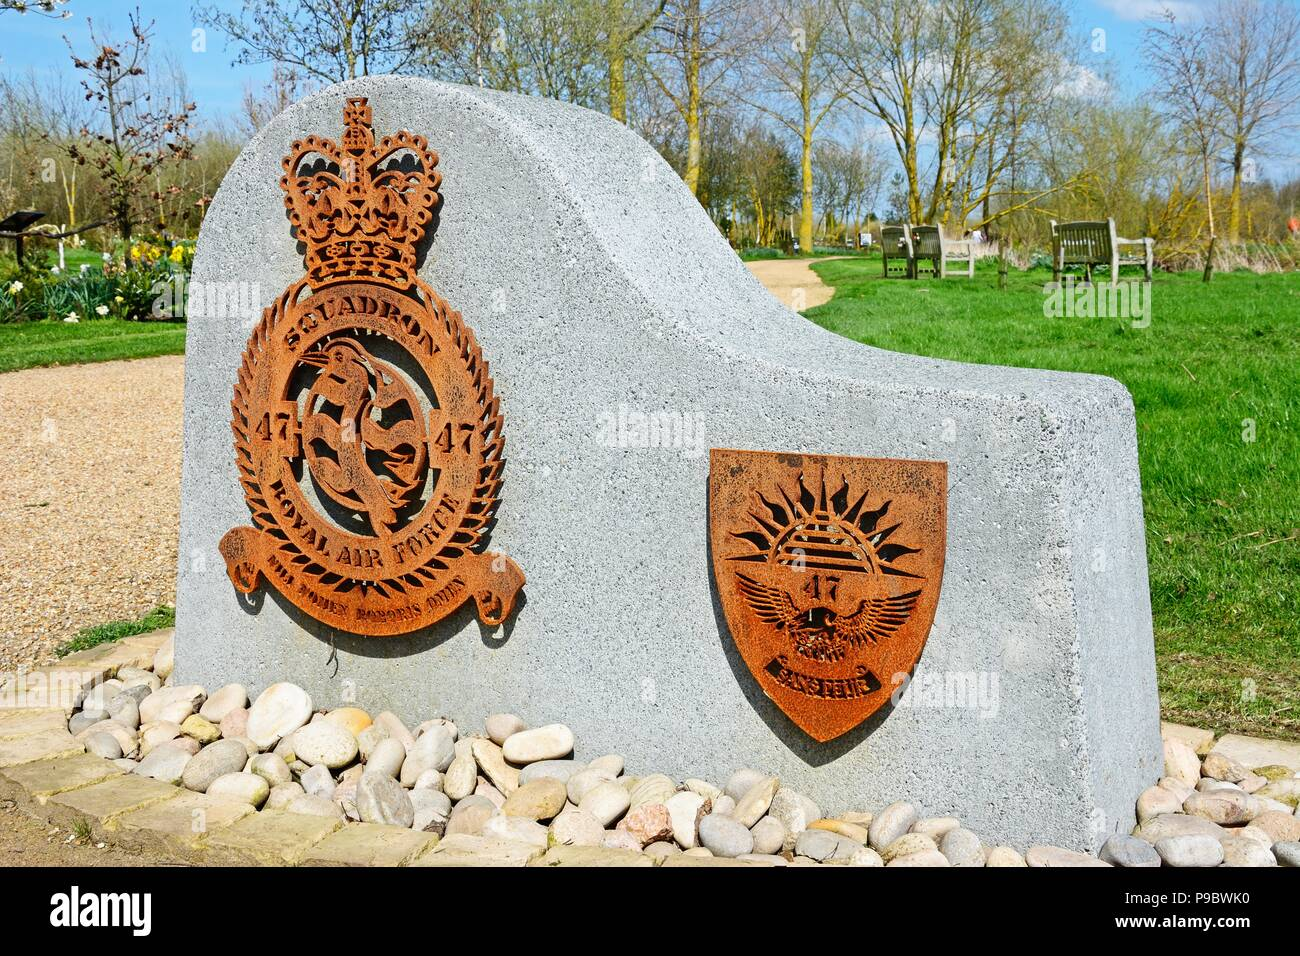 Royal Air Force Squadron memorial at the National Memorial Arboretum, Alrewas, Staffordshire, England, UK, Western Europe. - Stock Image